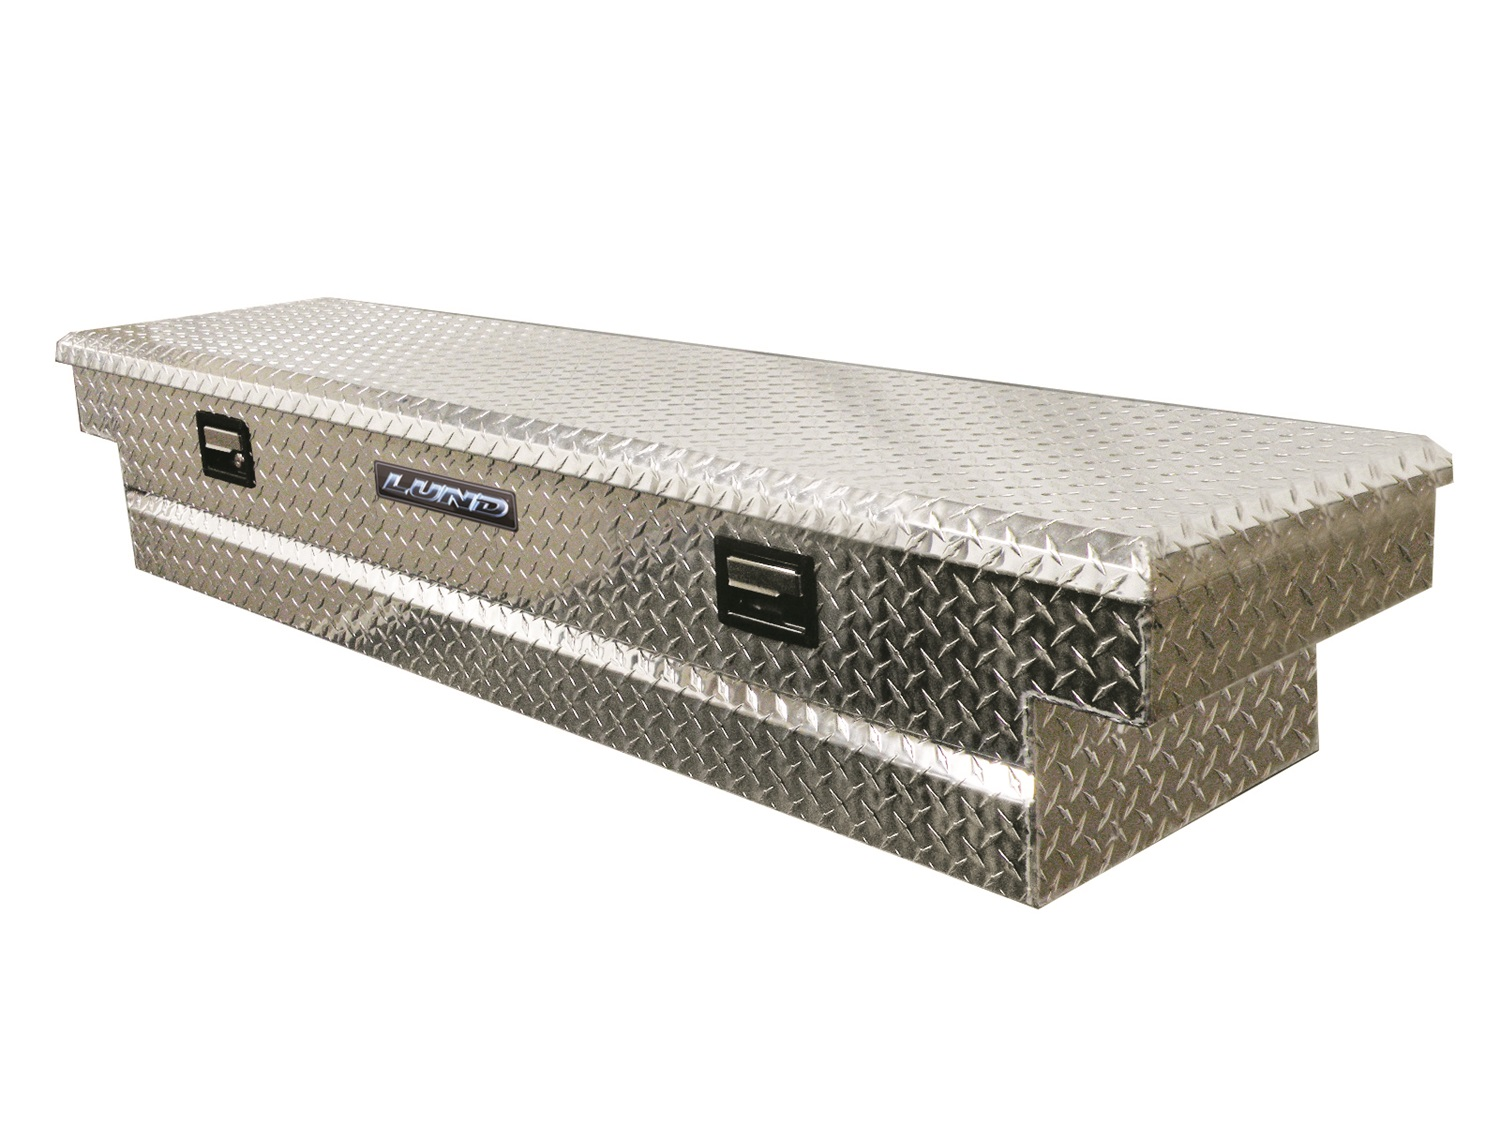 In Bed Metal Tool Box For Truck